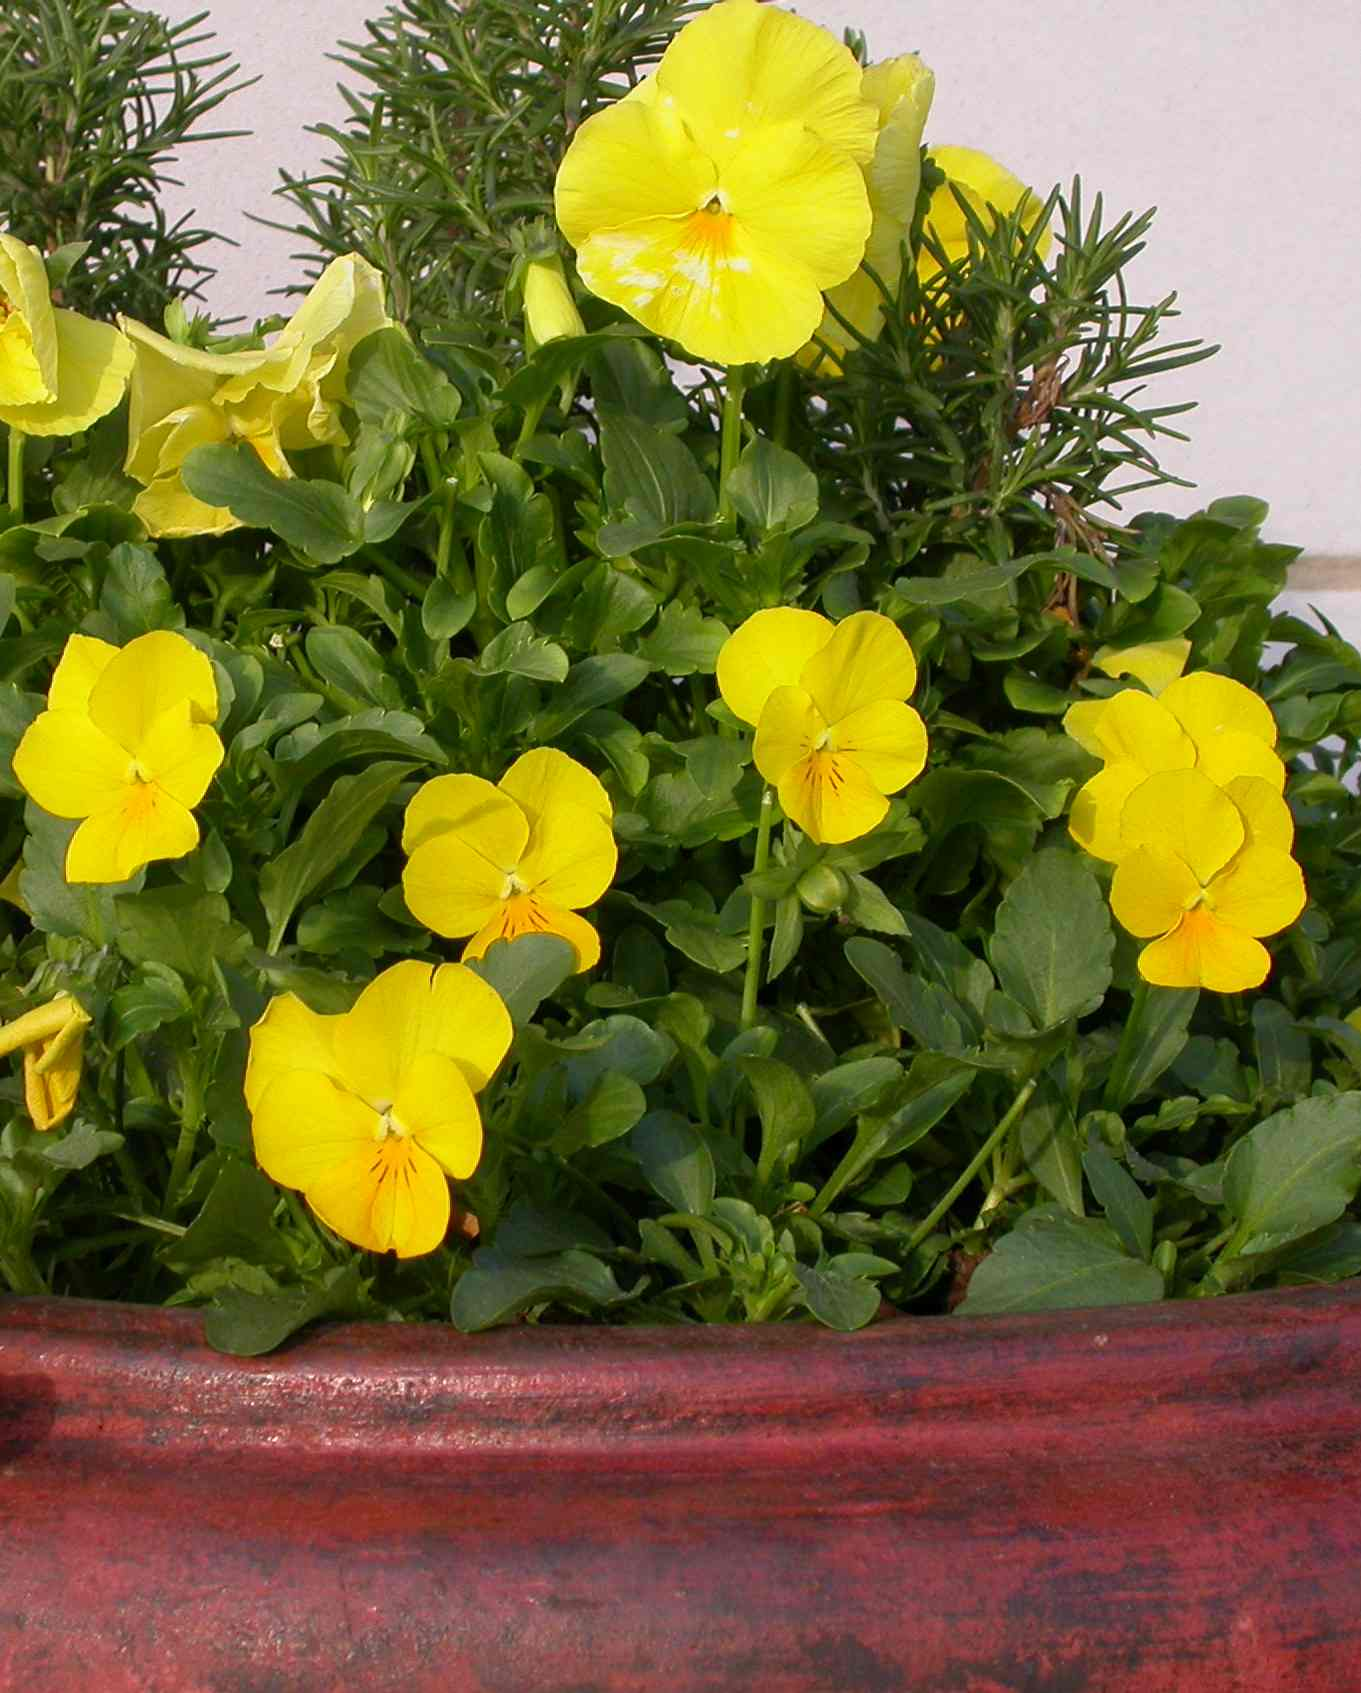 Winter wonders flowers that bloom in winter extension daily annuals pansies pinolas make a colorful container garden izmirmasajfo